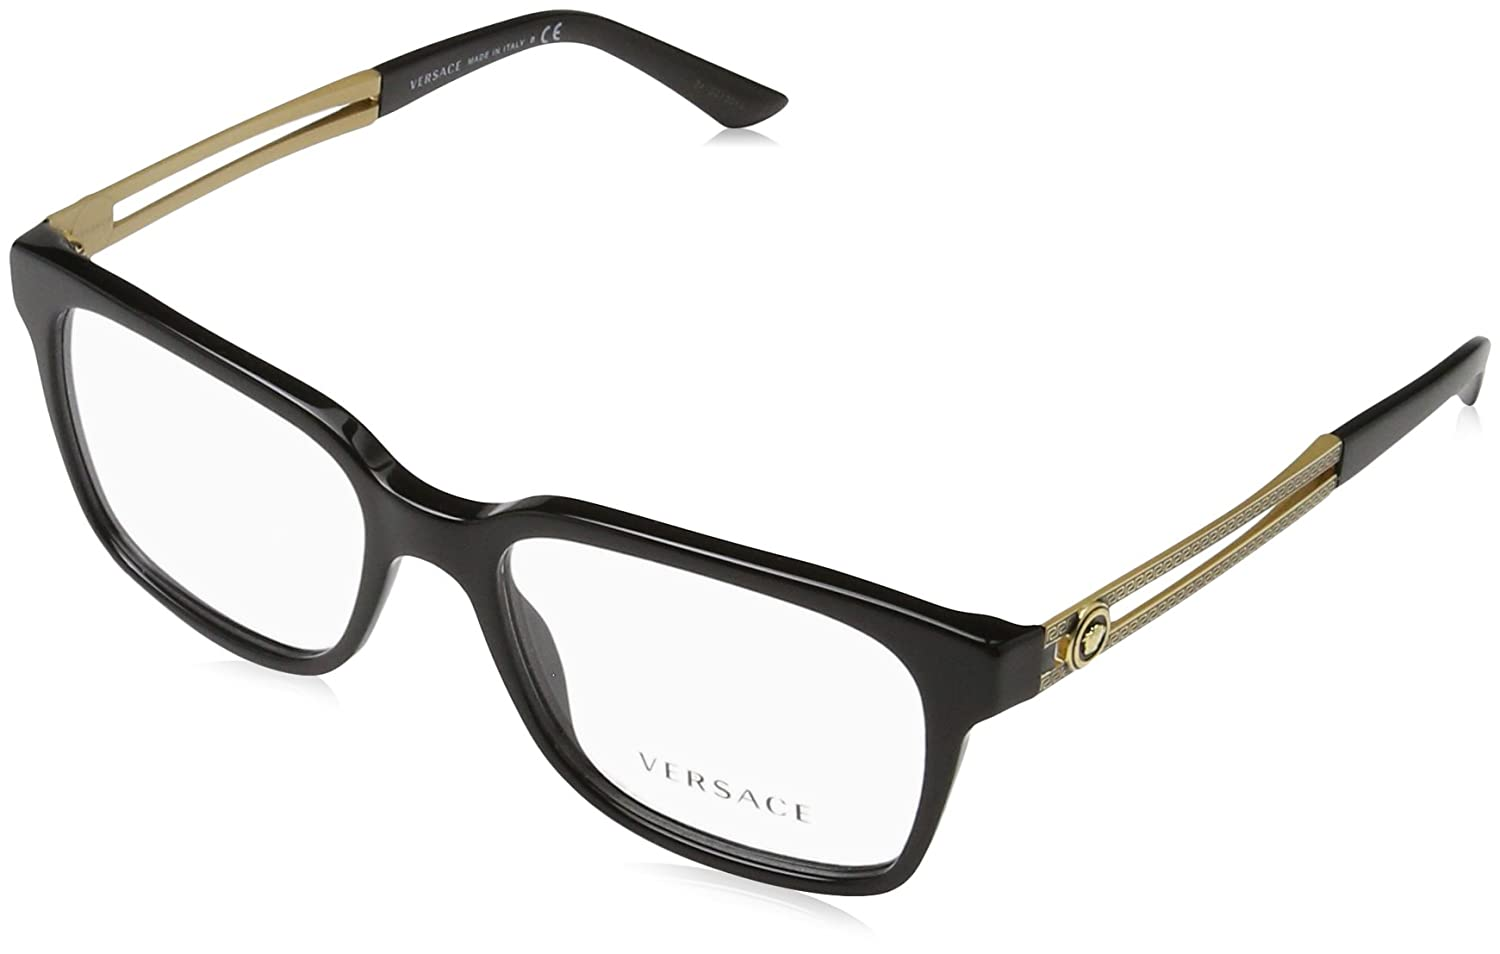 dc7c7bf0bba Amazon.com  Eyeglasses Versace VE 3218 GB1 BLACK  Clothing